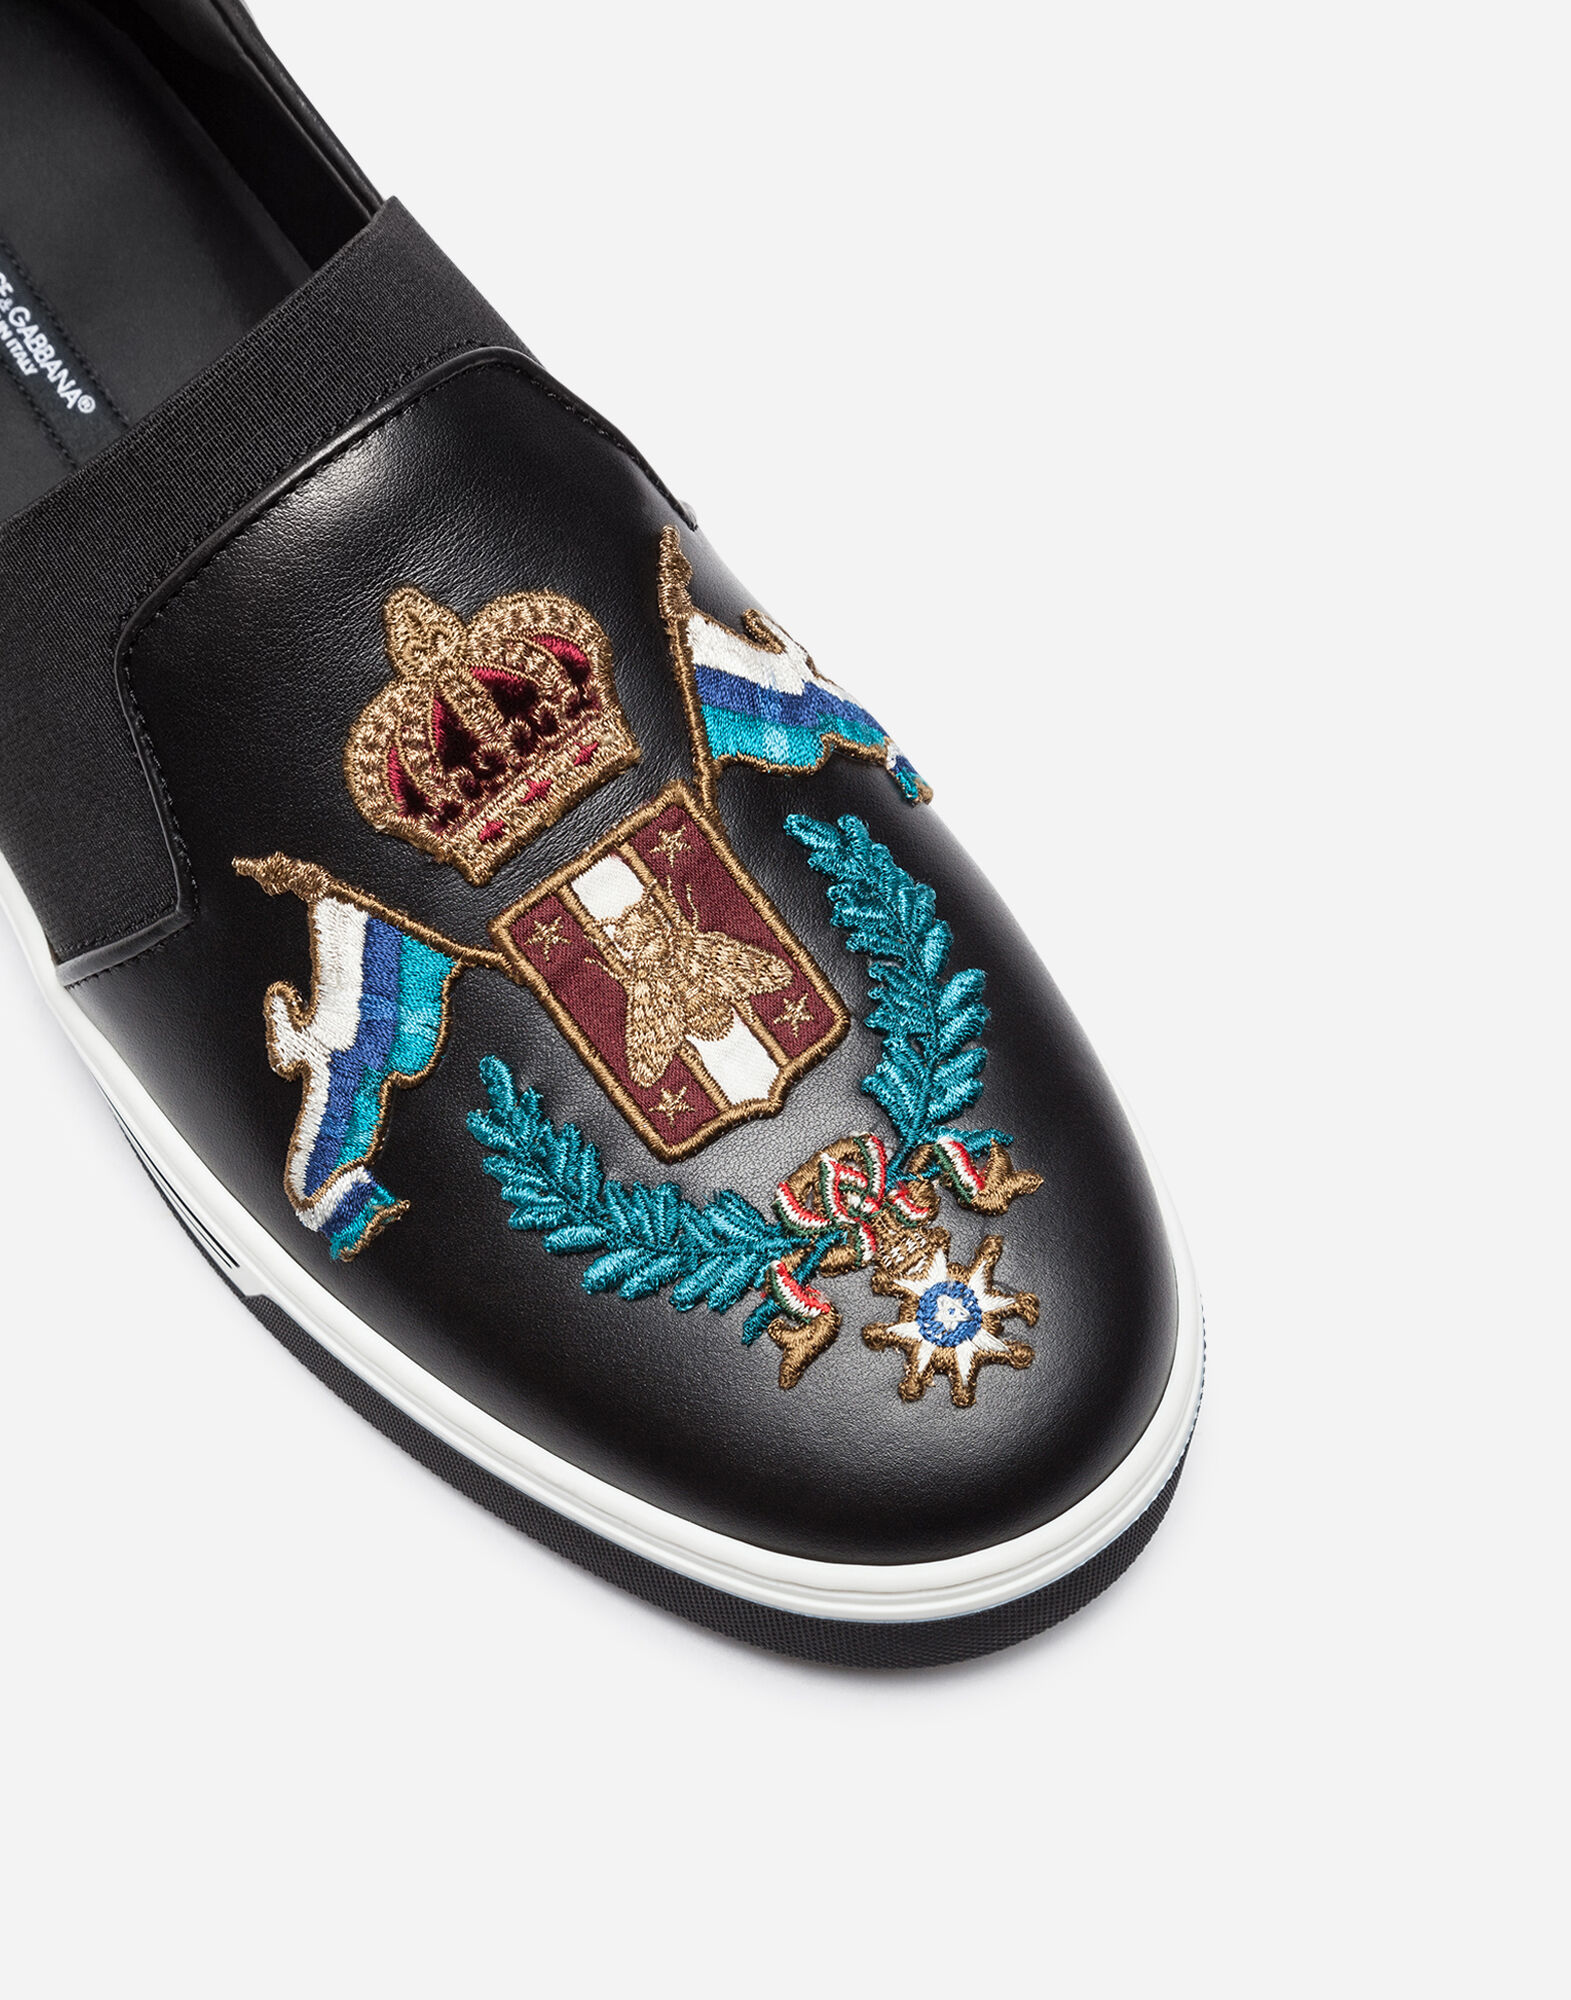 LONDON SLIP ON SNEAKERS IN LEATHER WITH PATCH